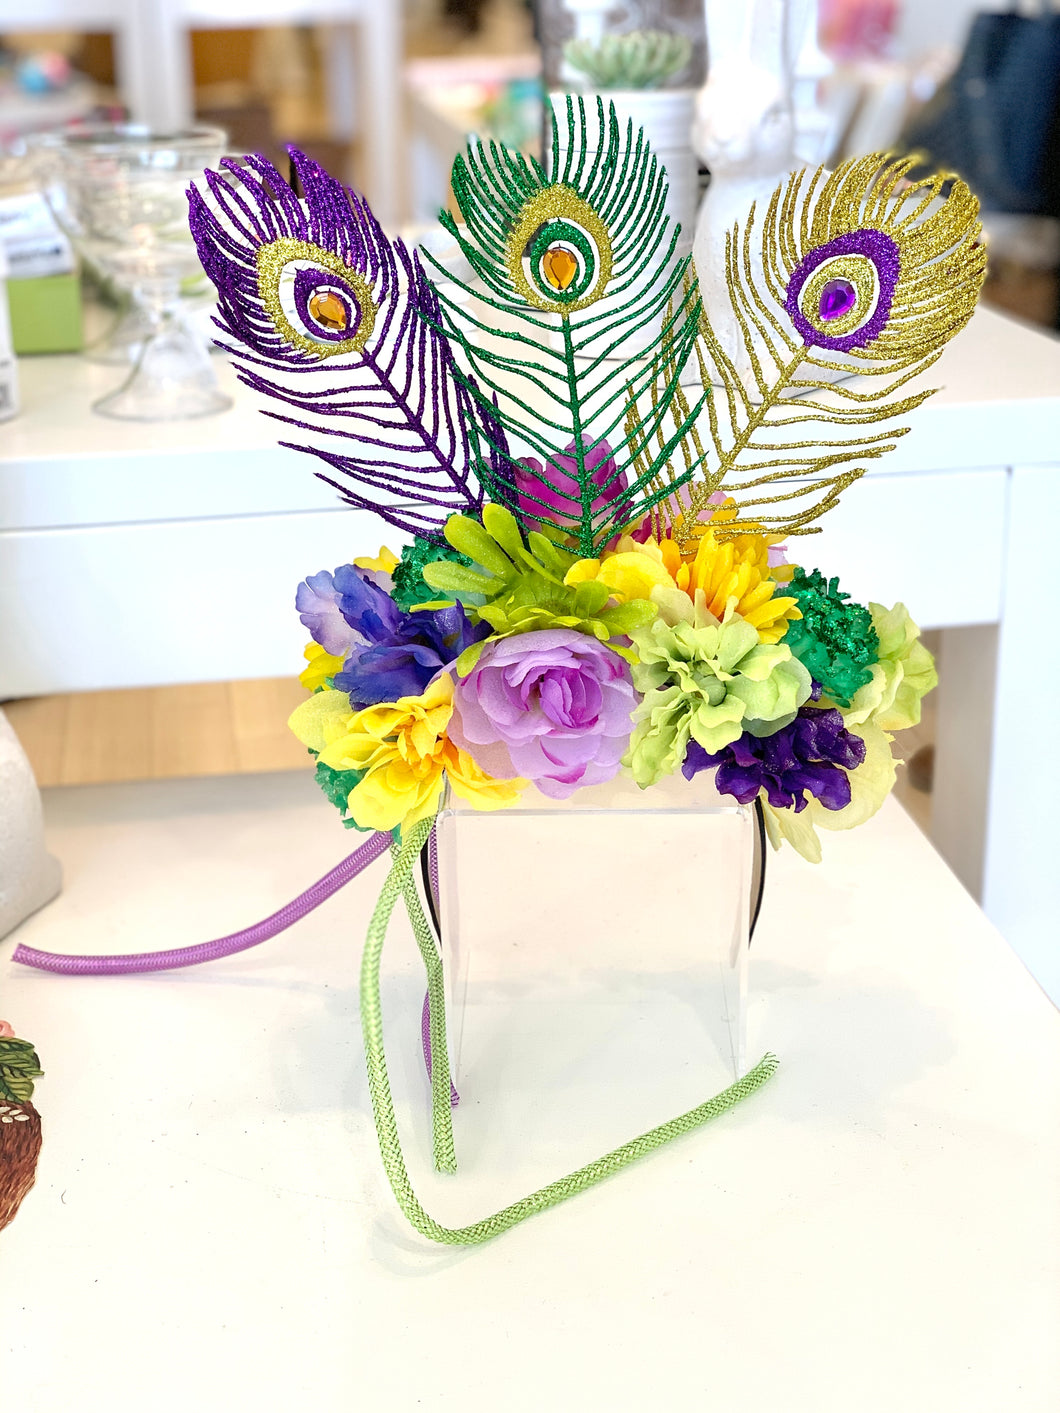 Mardi Gras Headpiece w/ Feathers